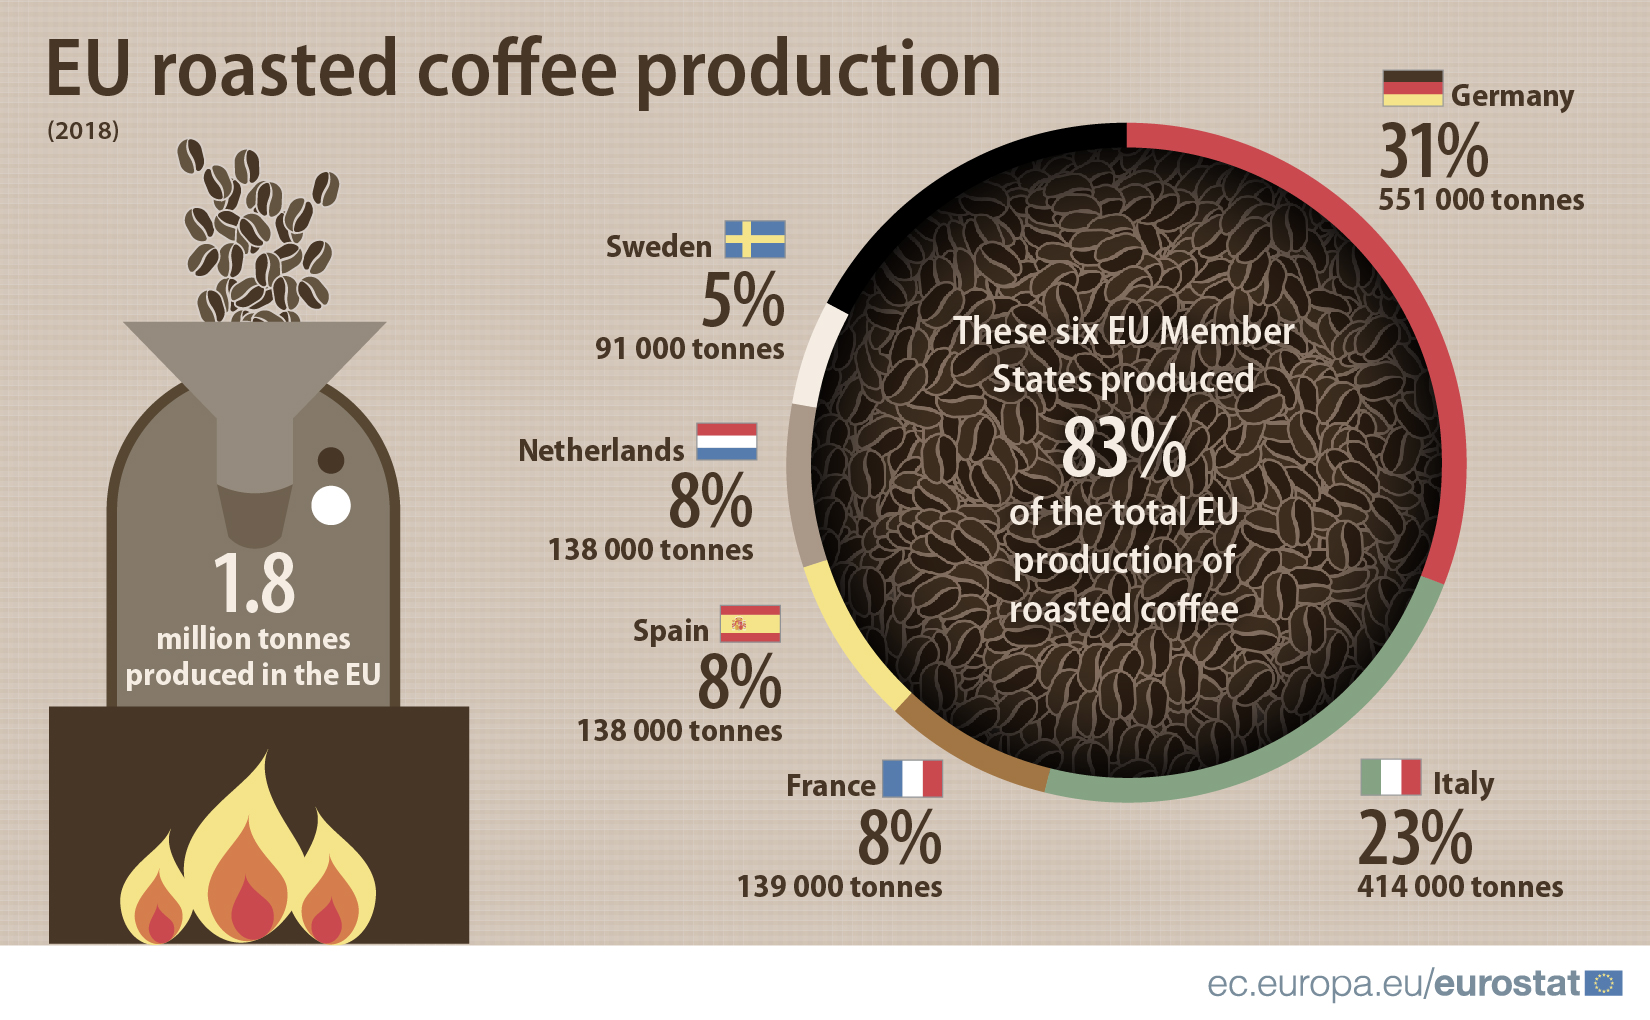 EU roasted coffee production